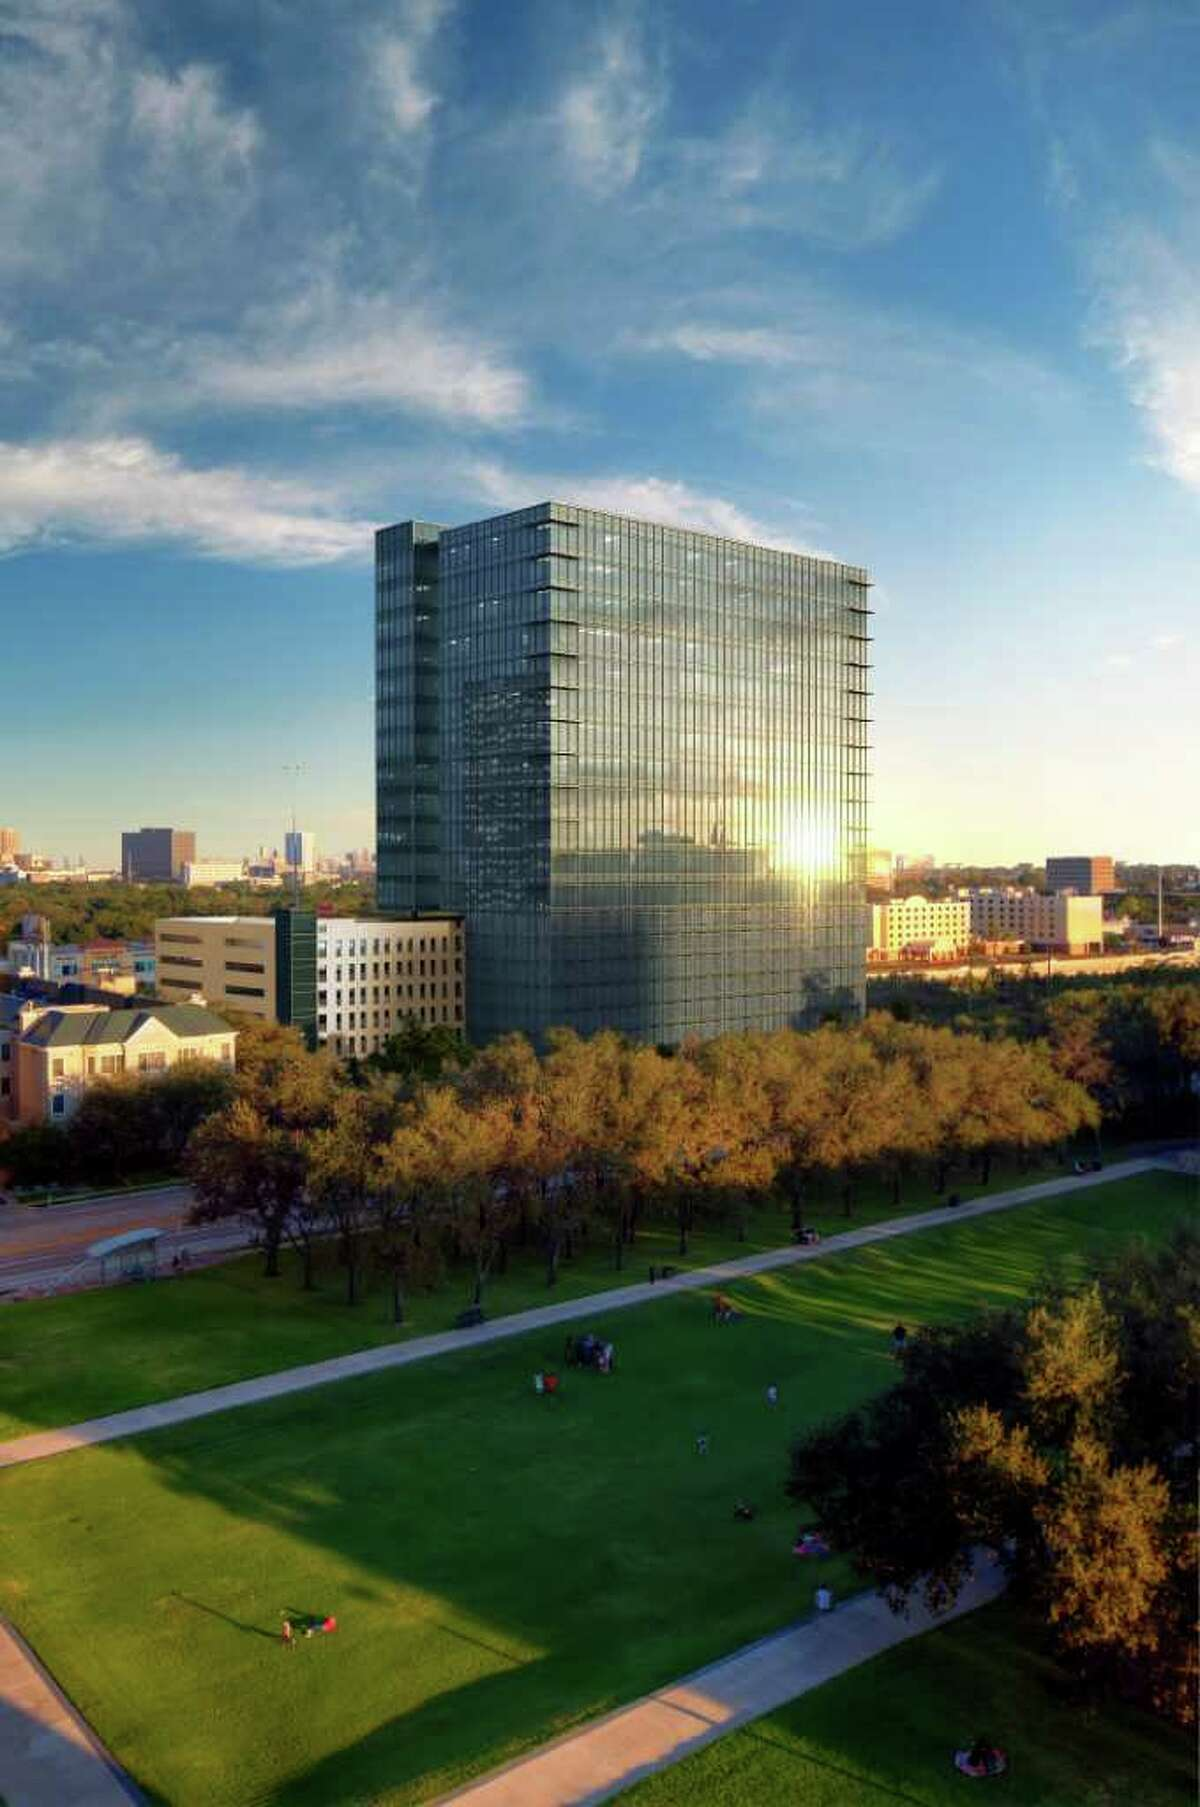 Skanska USA UPTOWN: Skanska USA Commercial Development has received a building permit for a tower across from the Water Wall near Williams Tower.